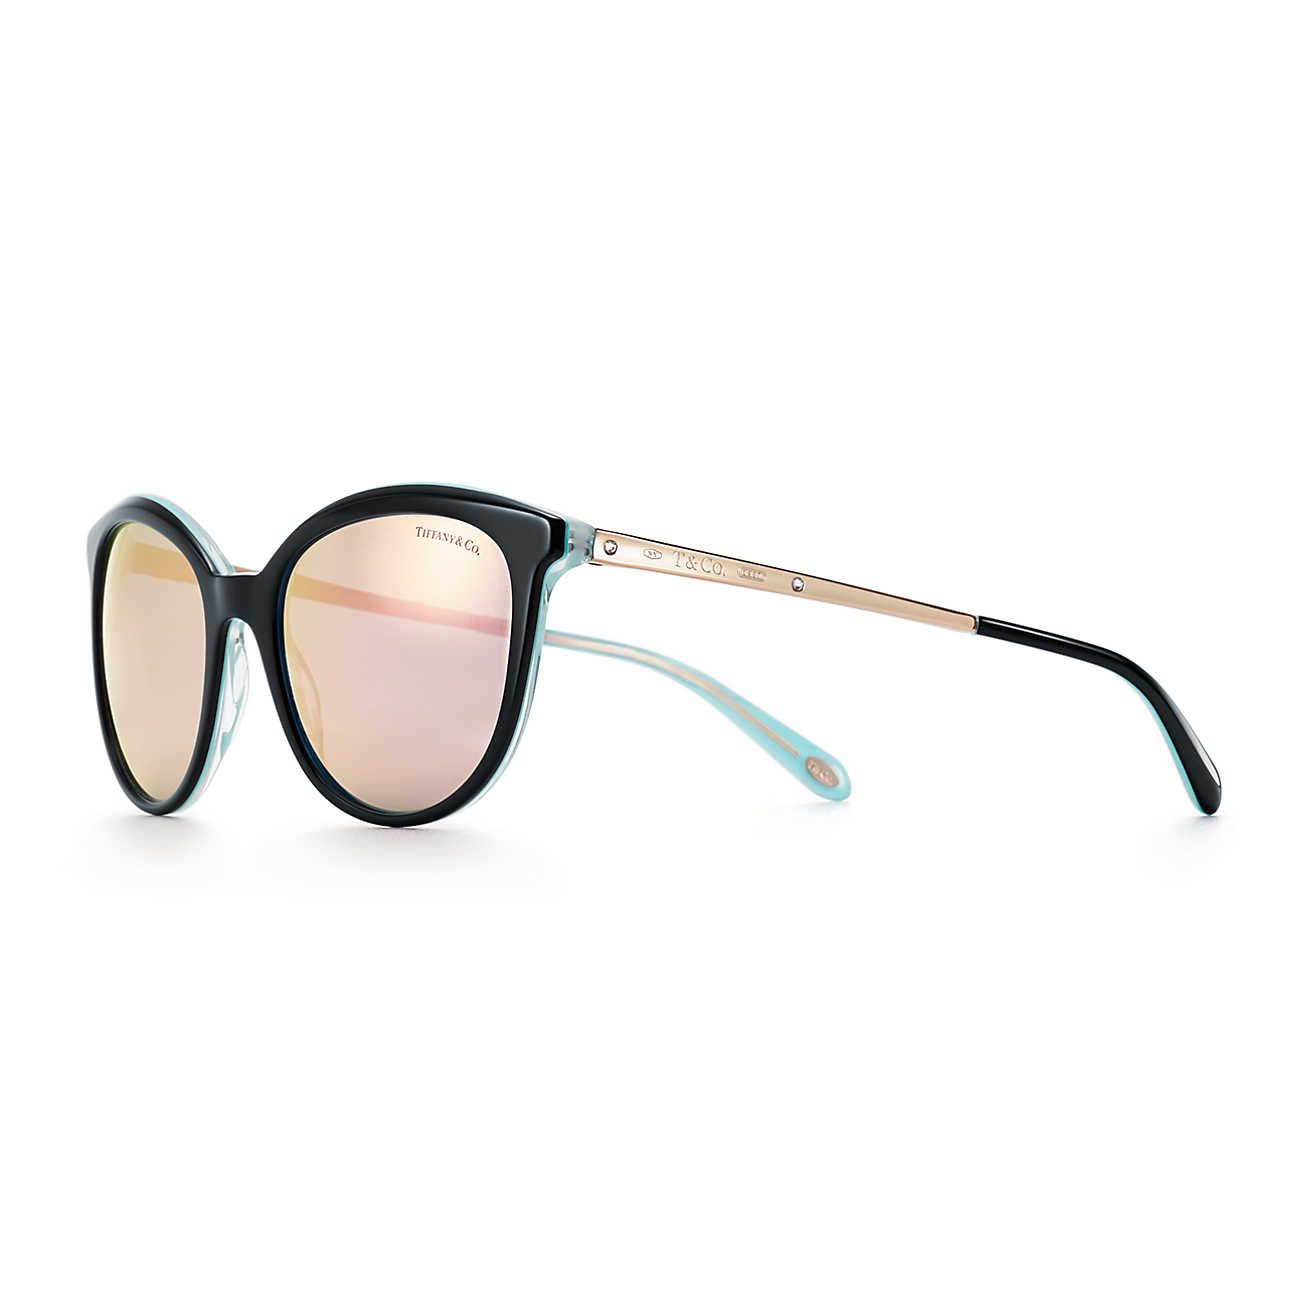 719006797ab Tiffany 1837™ panthos sunglasses in black and Tiffany Blue acetate.